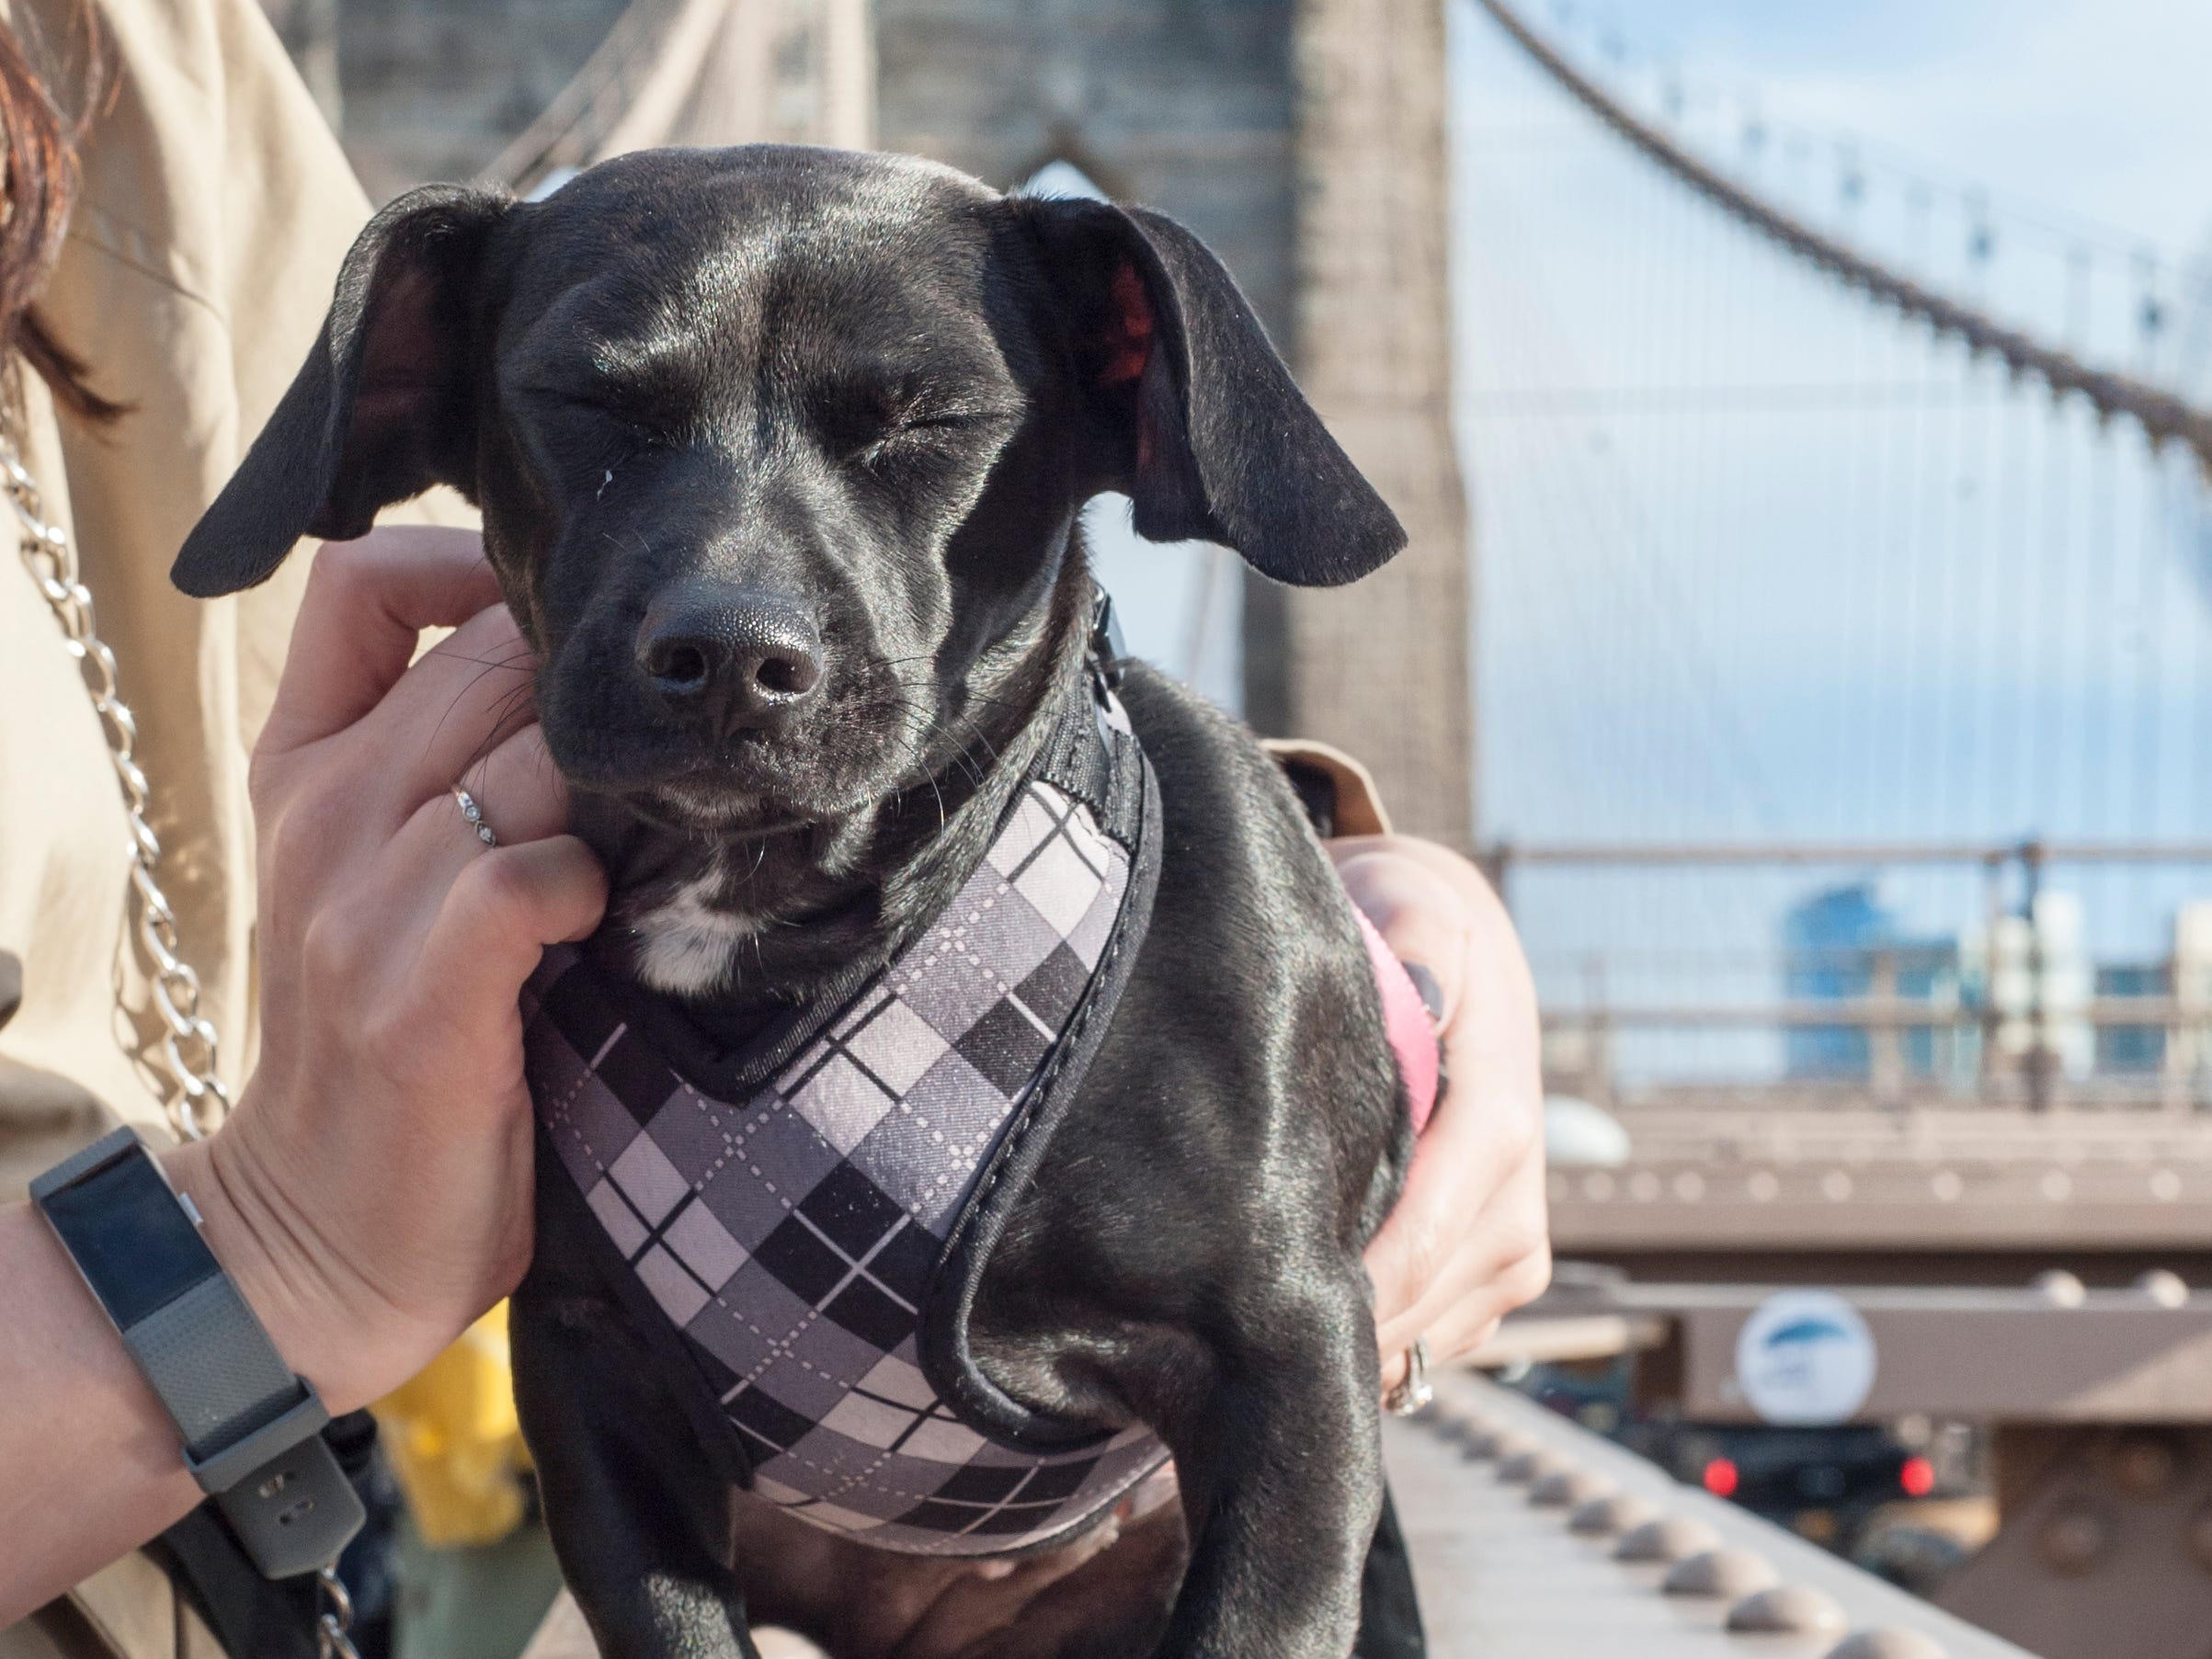 Molly Mae takes in the sights of New York City. She was in NYC for taping of Animal Planet's 2019 Puppy Bowl. It will air on Feb. 3.